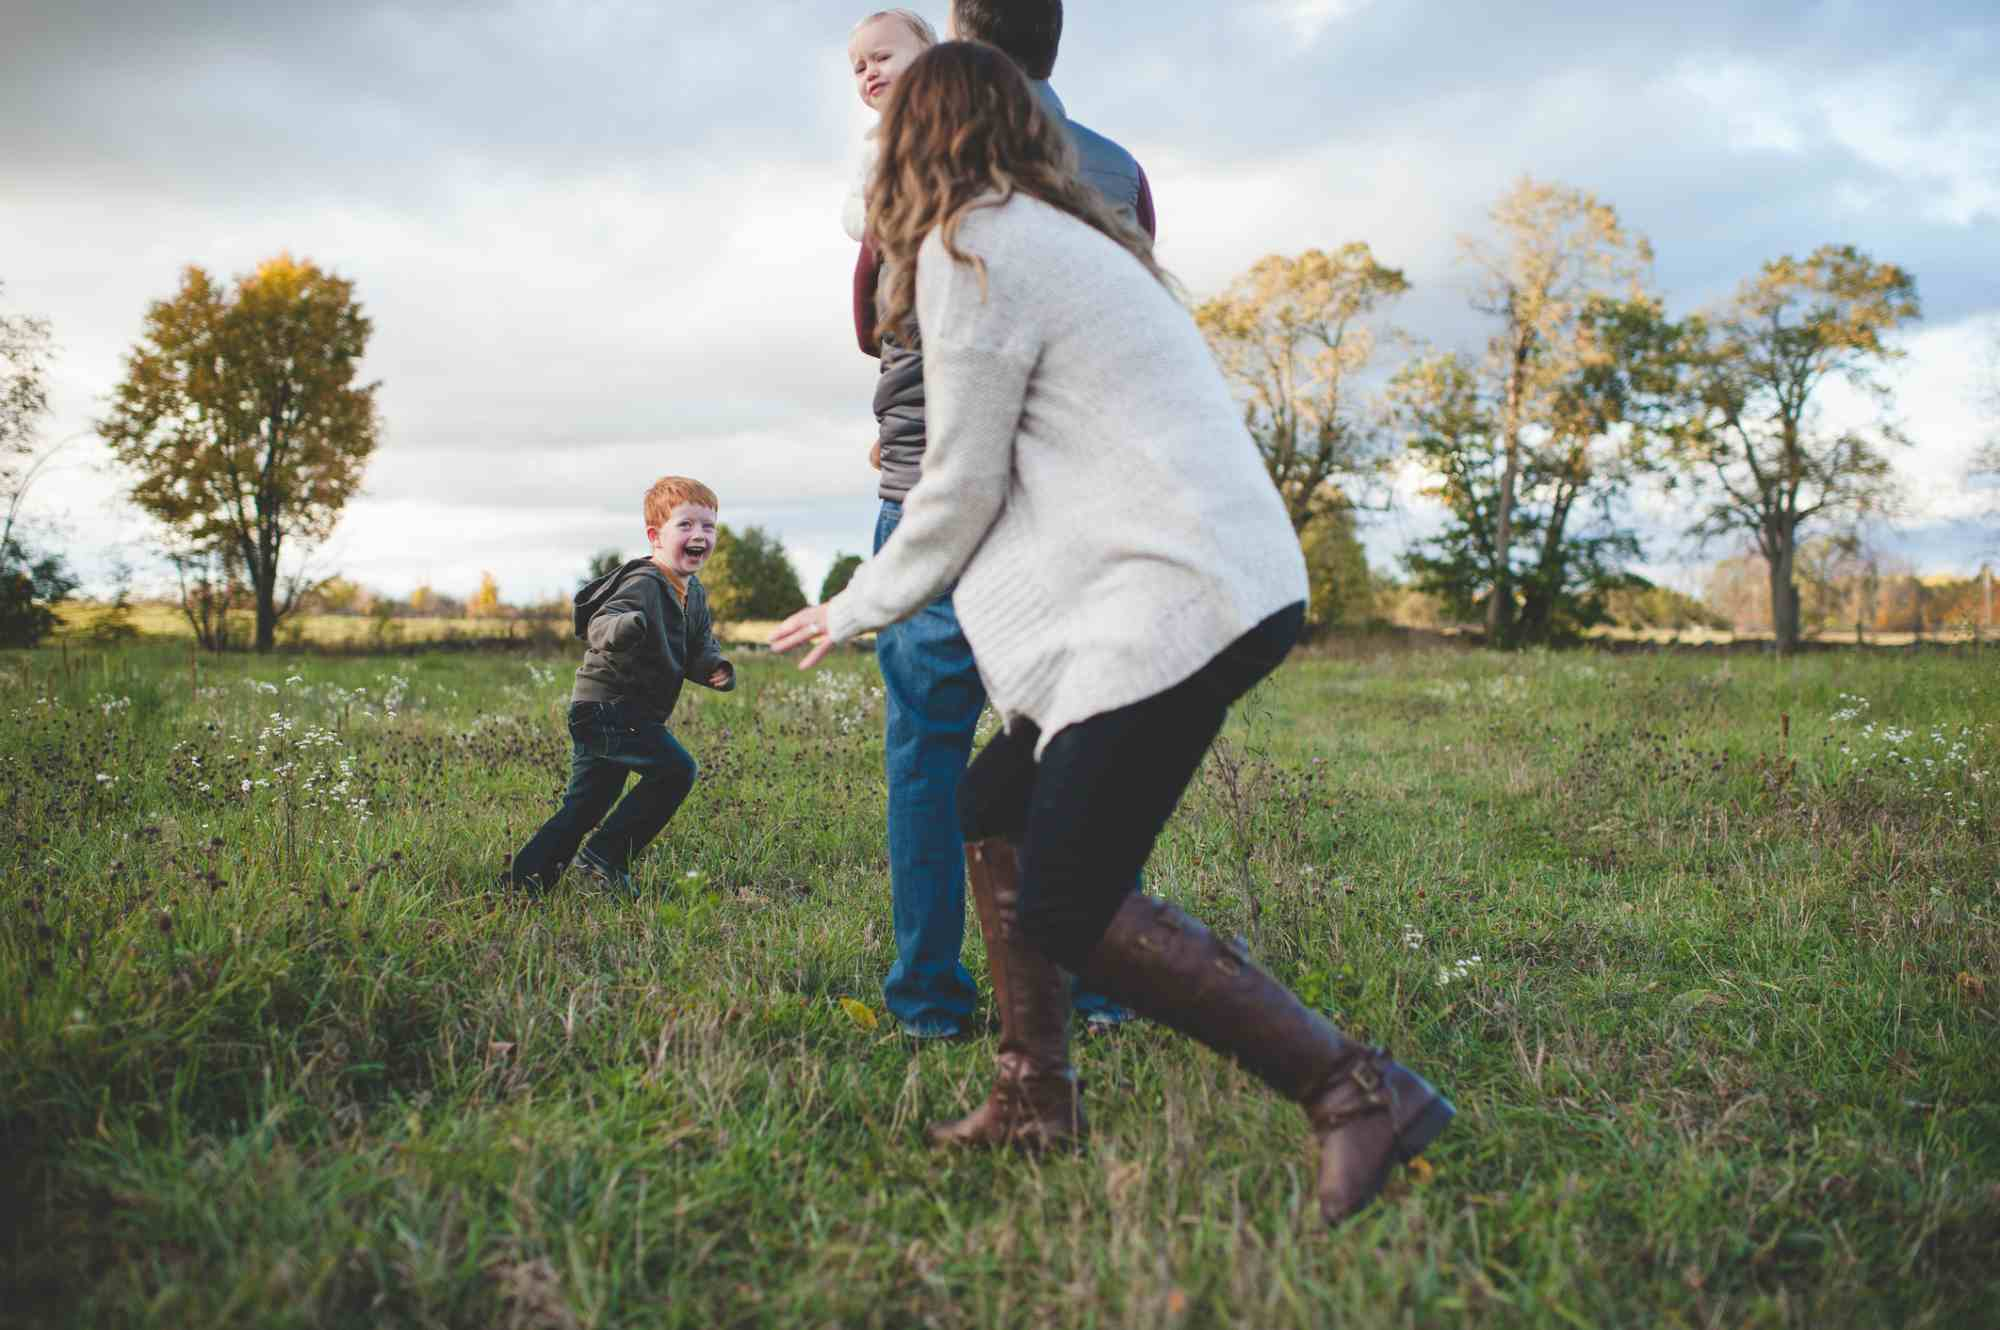 Family running around in a field